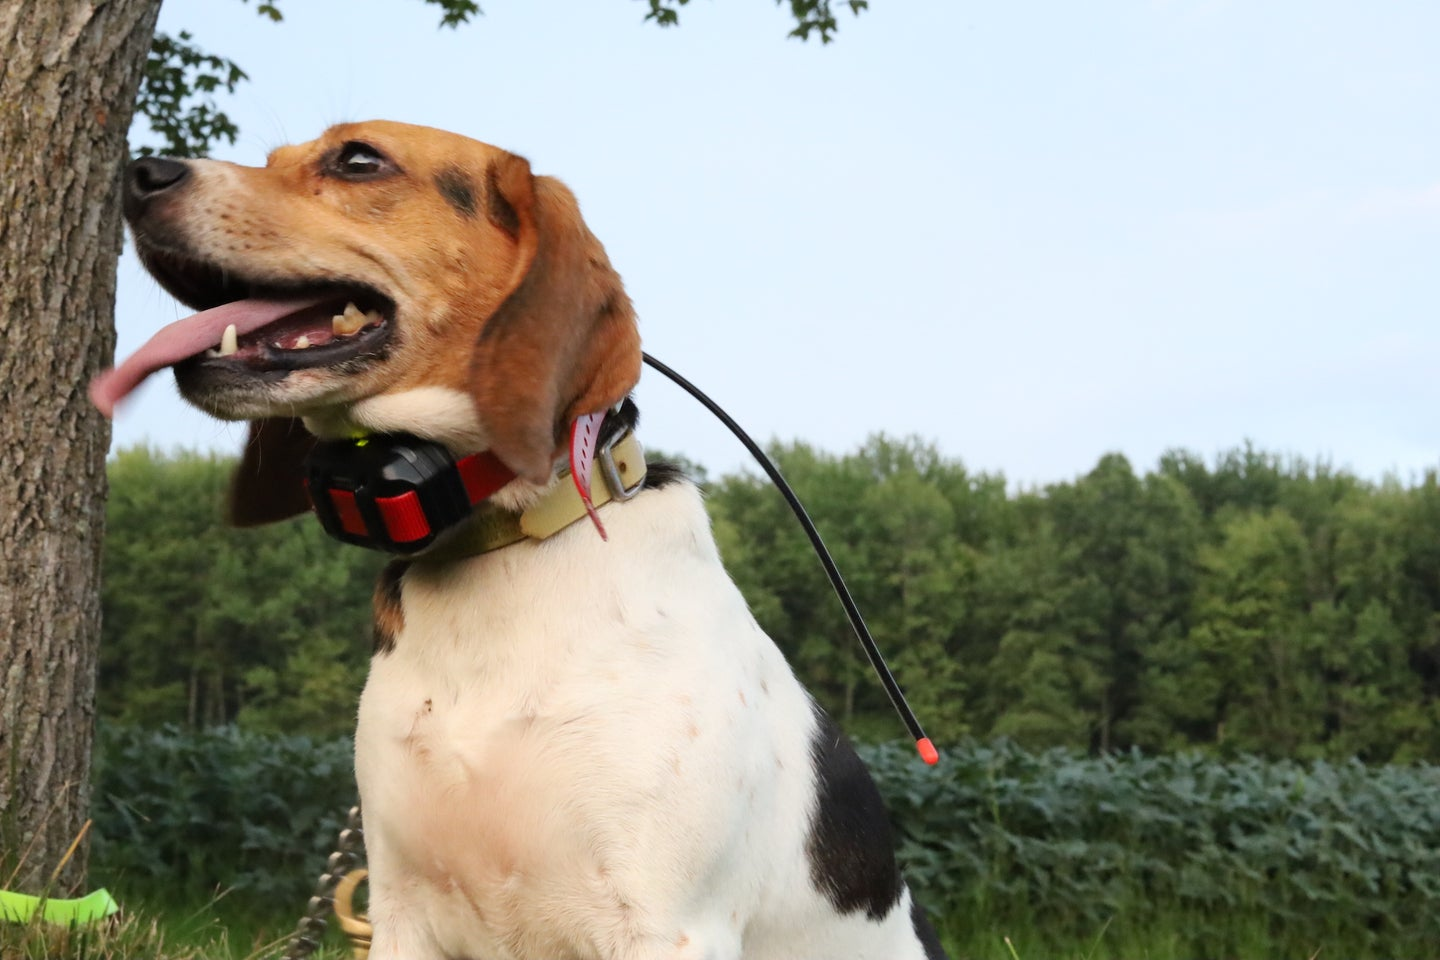 A brown and white dog wearing a tracking collar